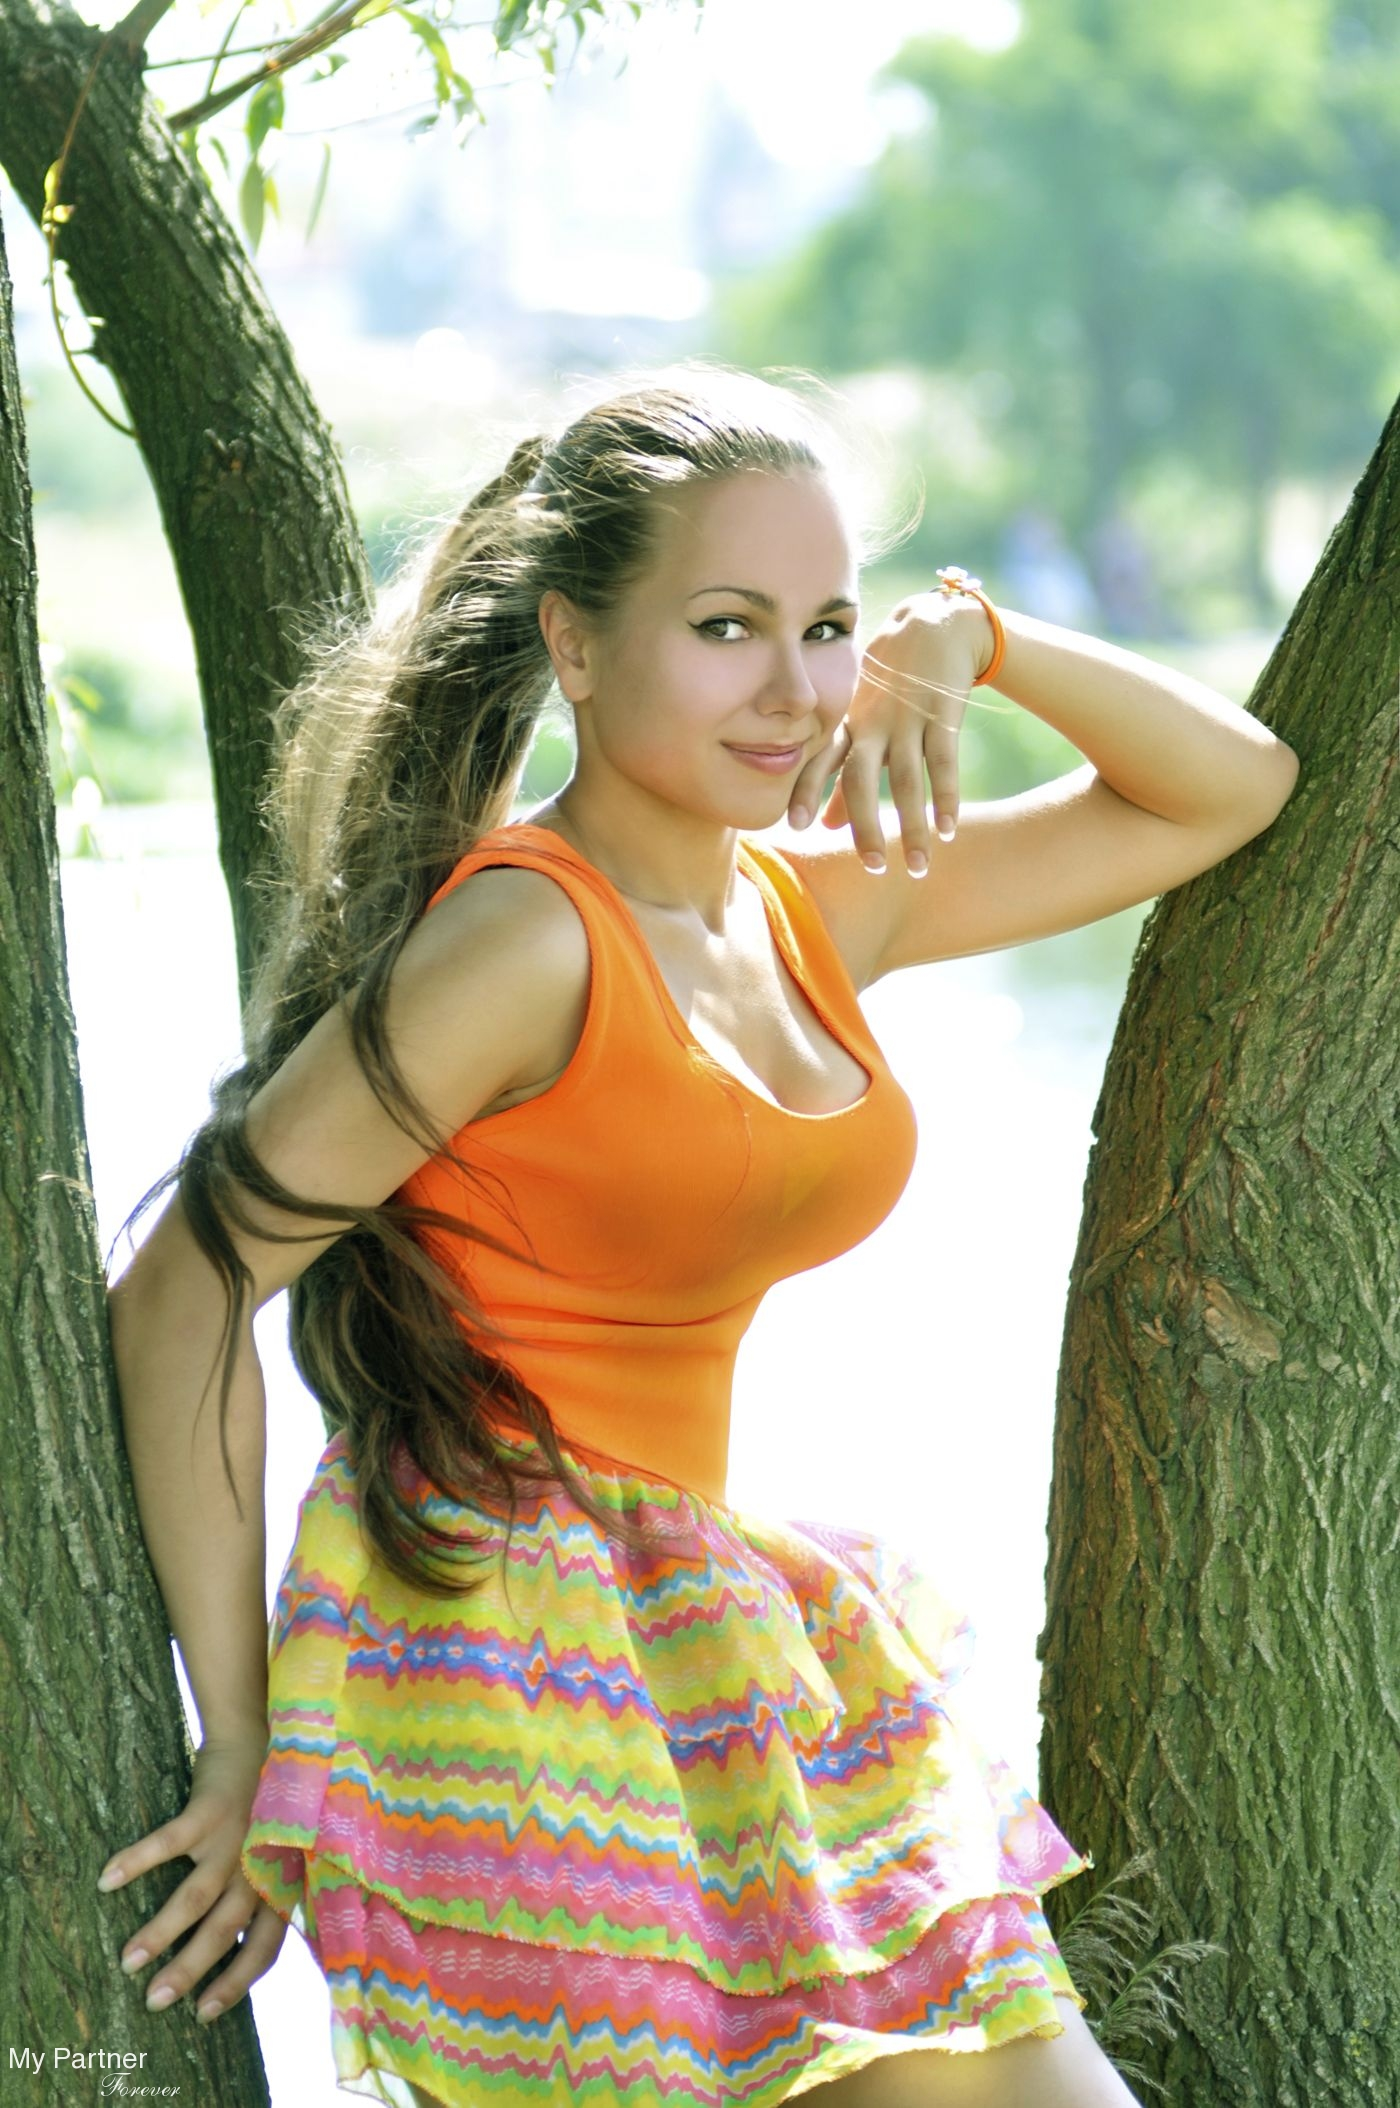 kiev free dating sites